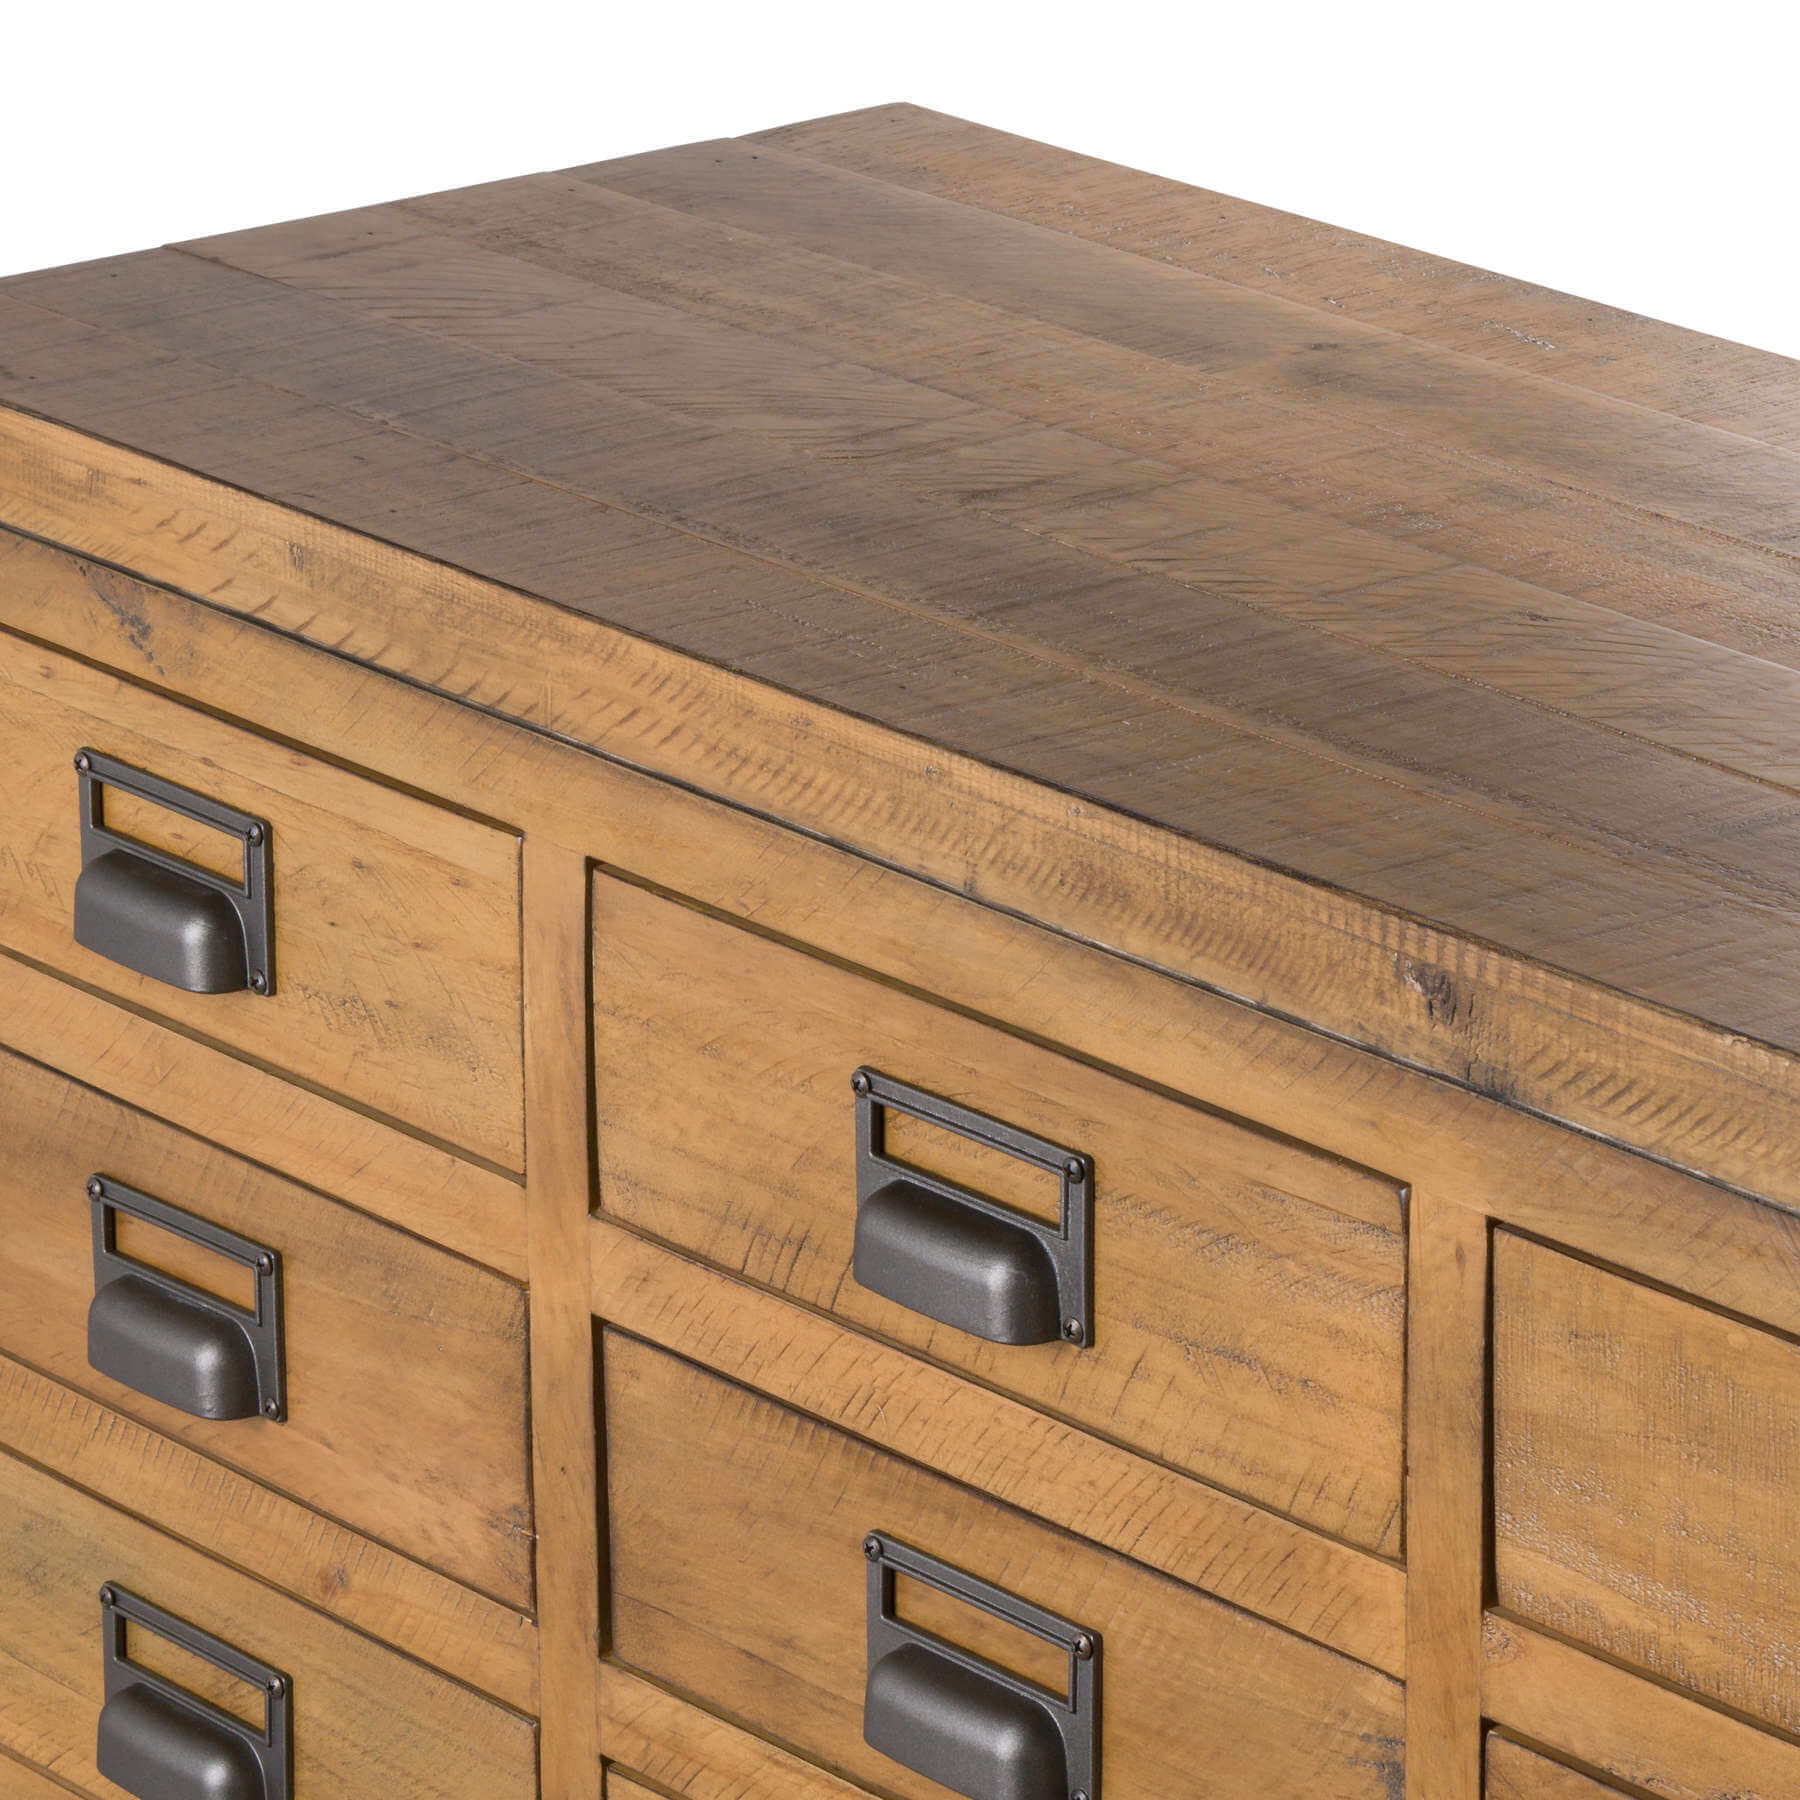 The Draftsman Collection 20 Drawer Merchant Chest